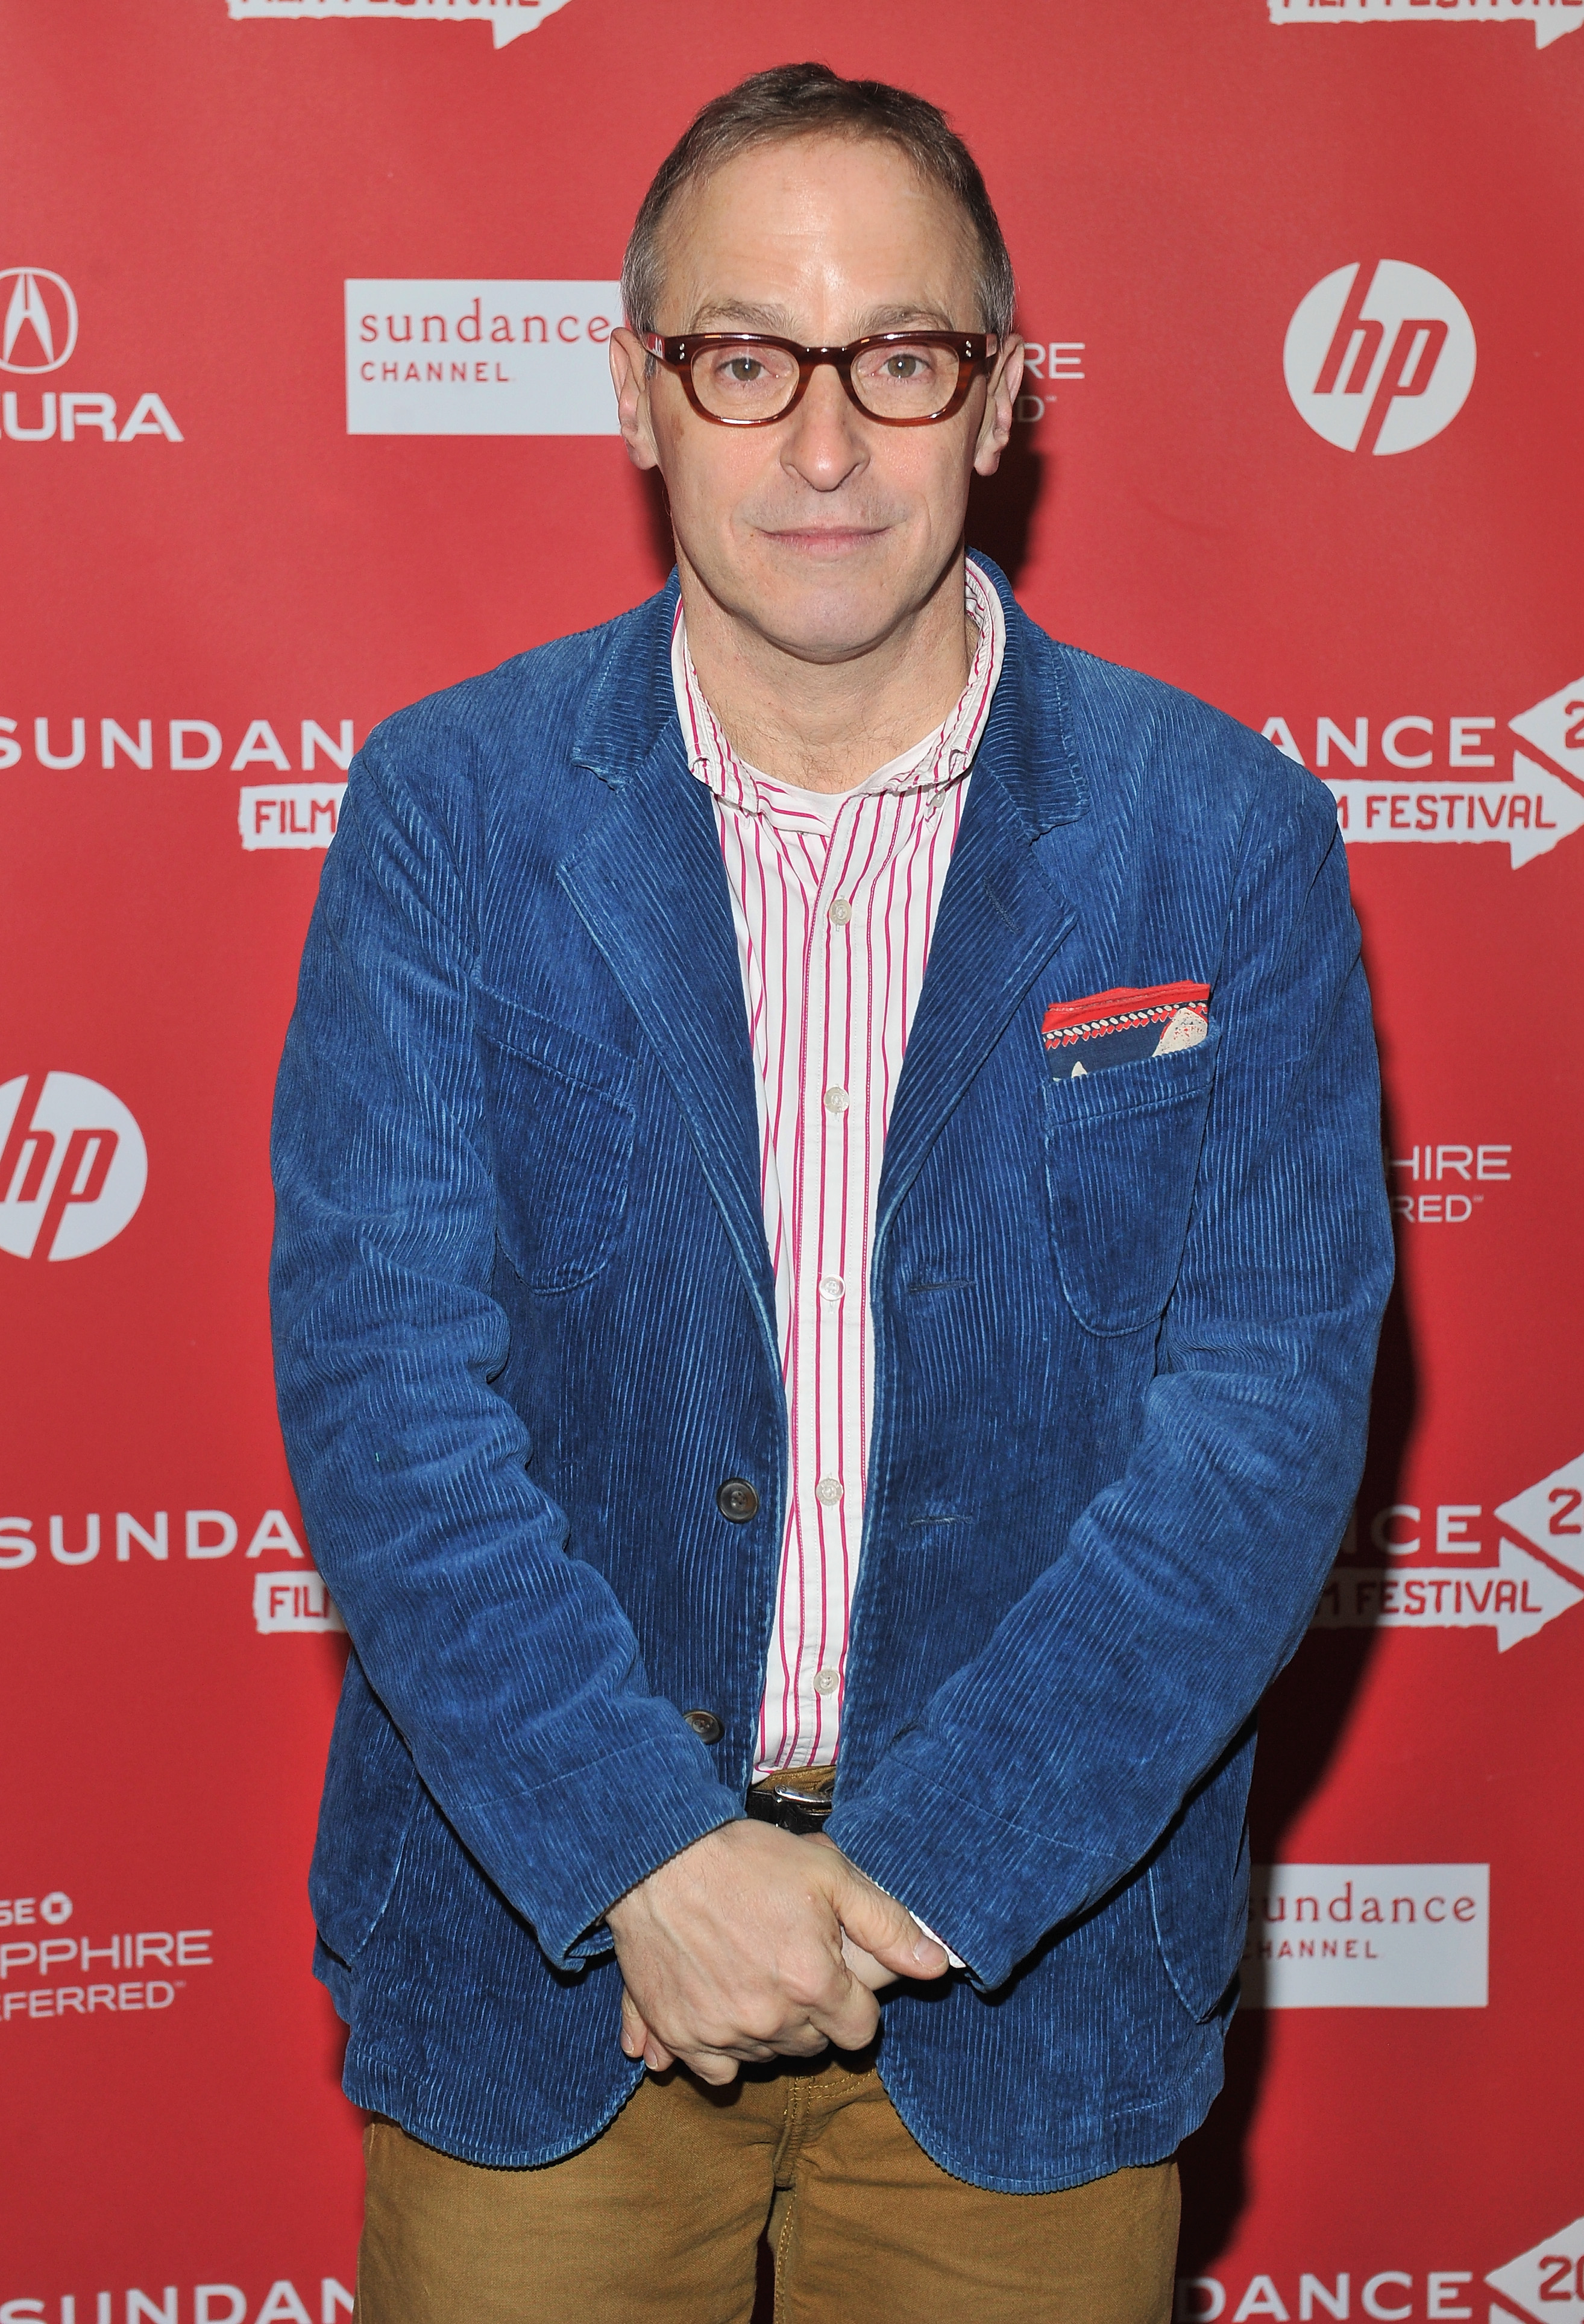 David Sedaris attends a premiere at Library Center Theater during the 2013 Sundance Film Festival in Park City, Utah, on Jan. 20, 2013